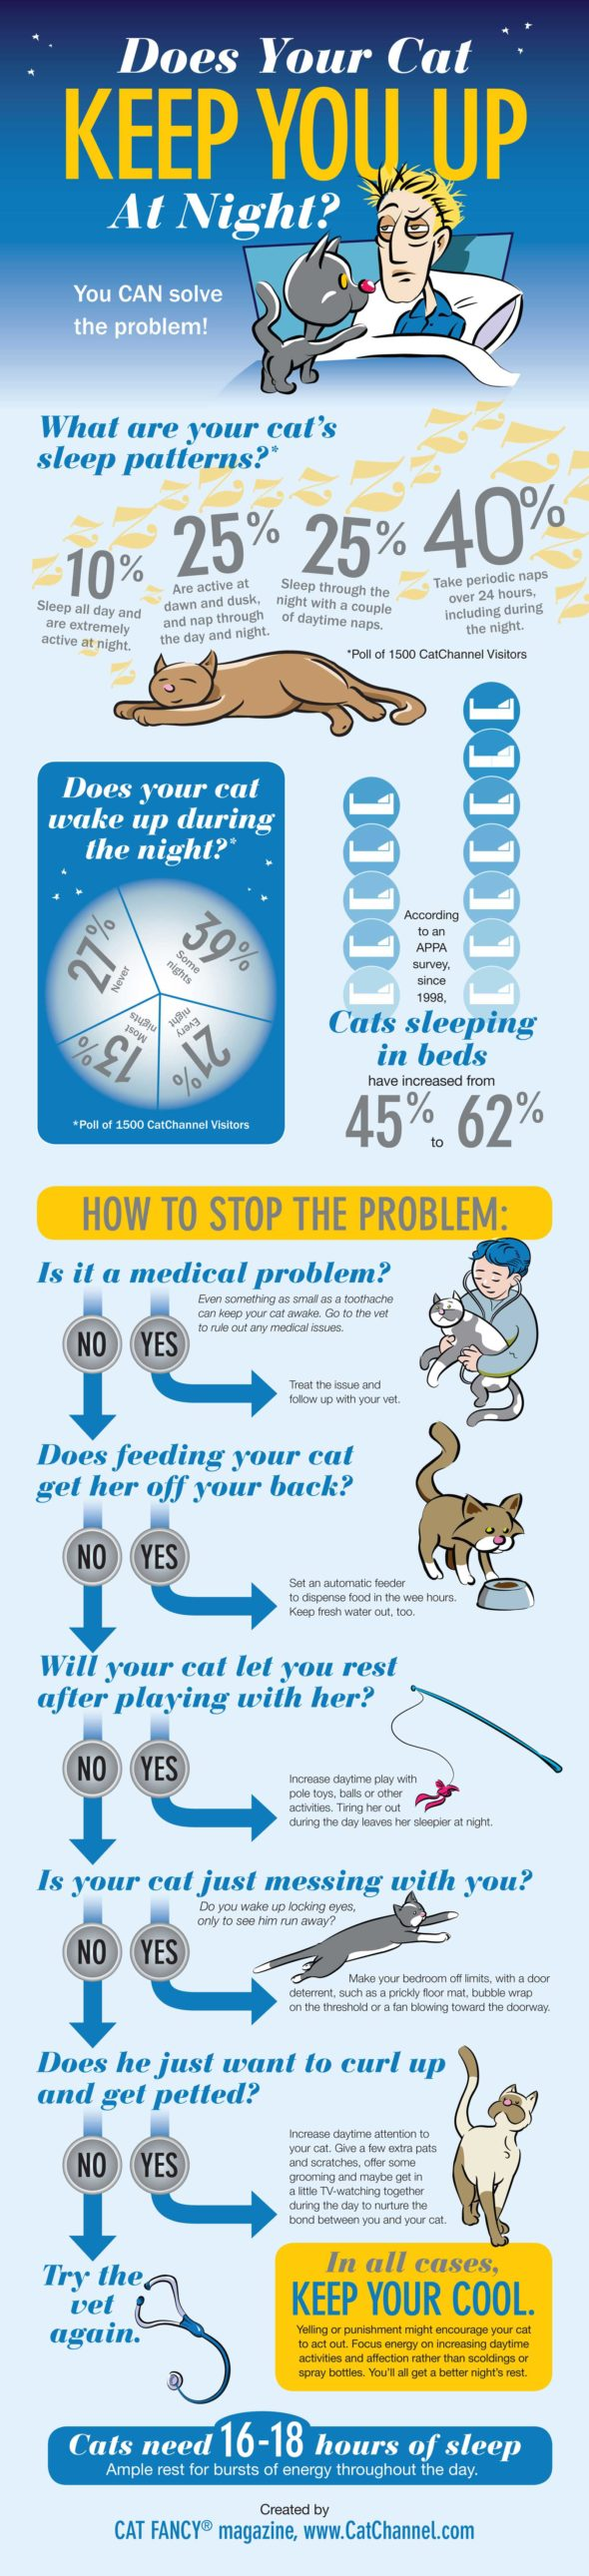 Infographic: Does your cat keep you up at night?